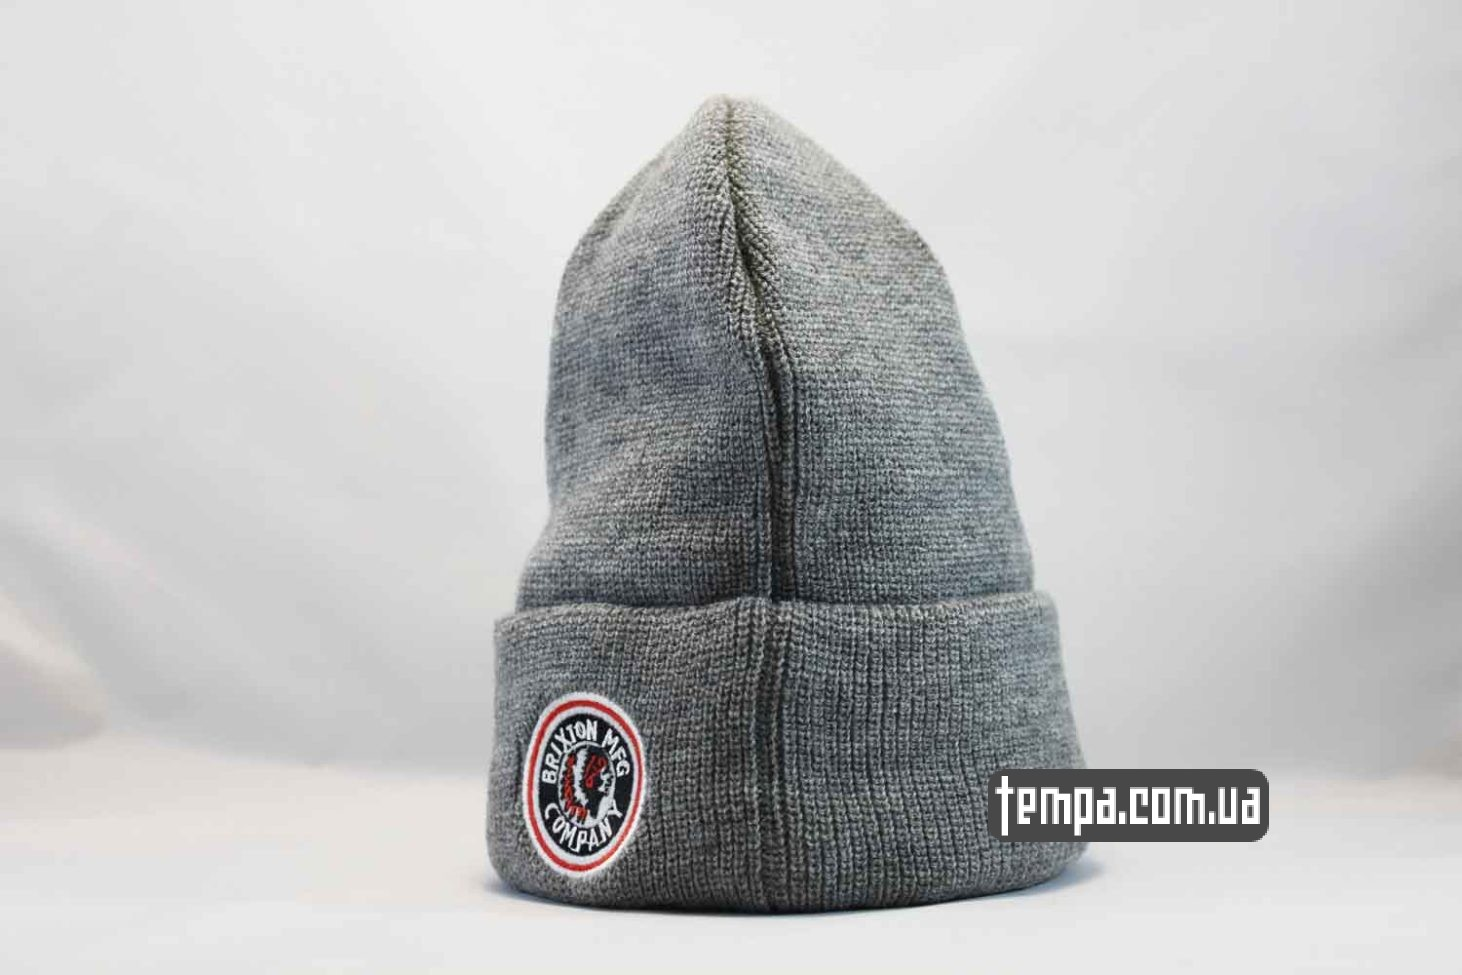 брикстон Украина шапка beanie BRIXTON MFG CO серая indian с индейцем